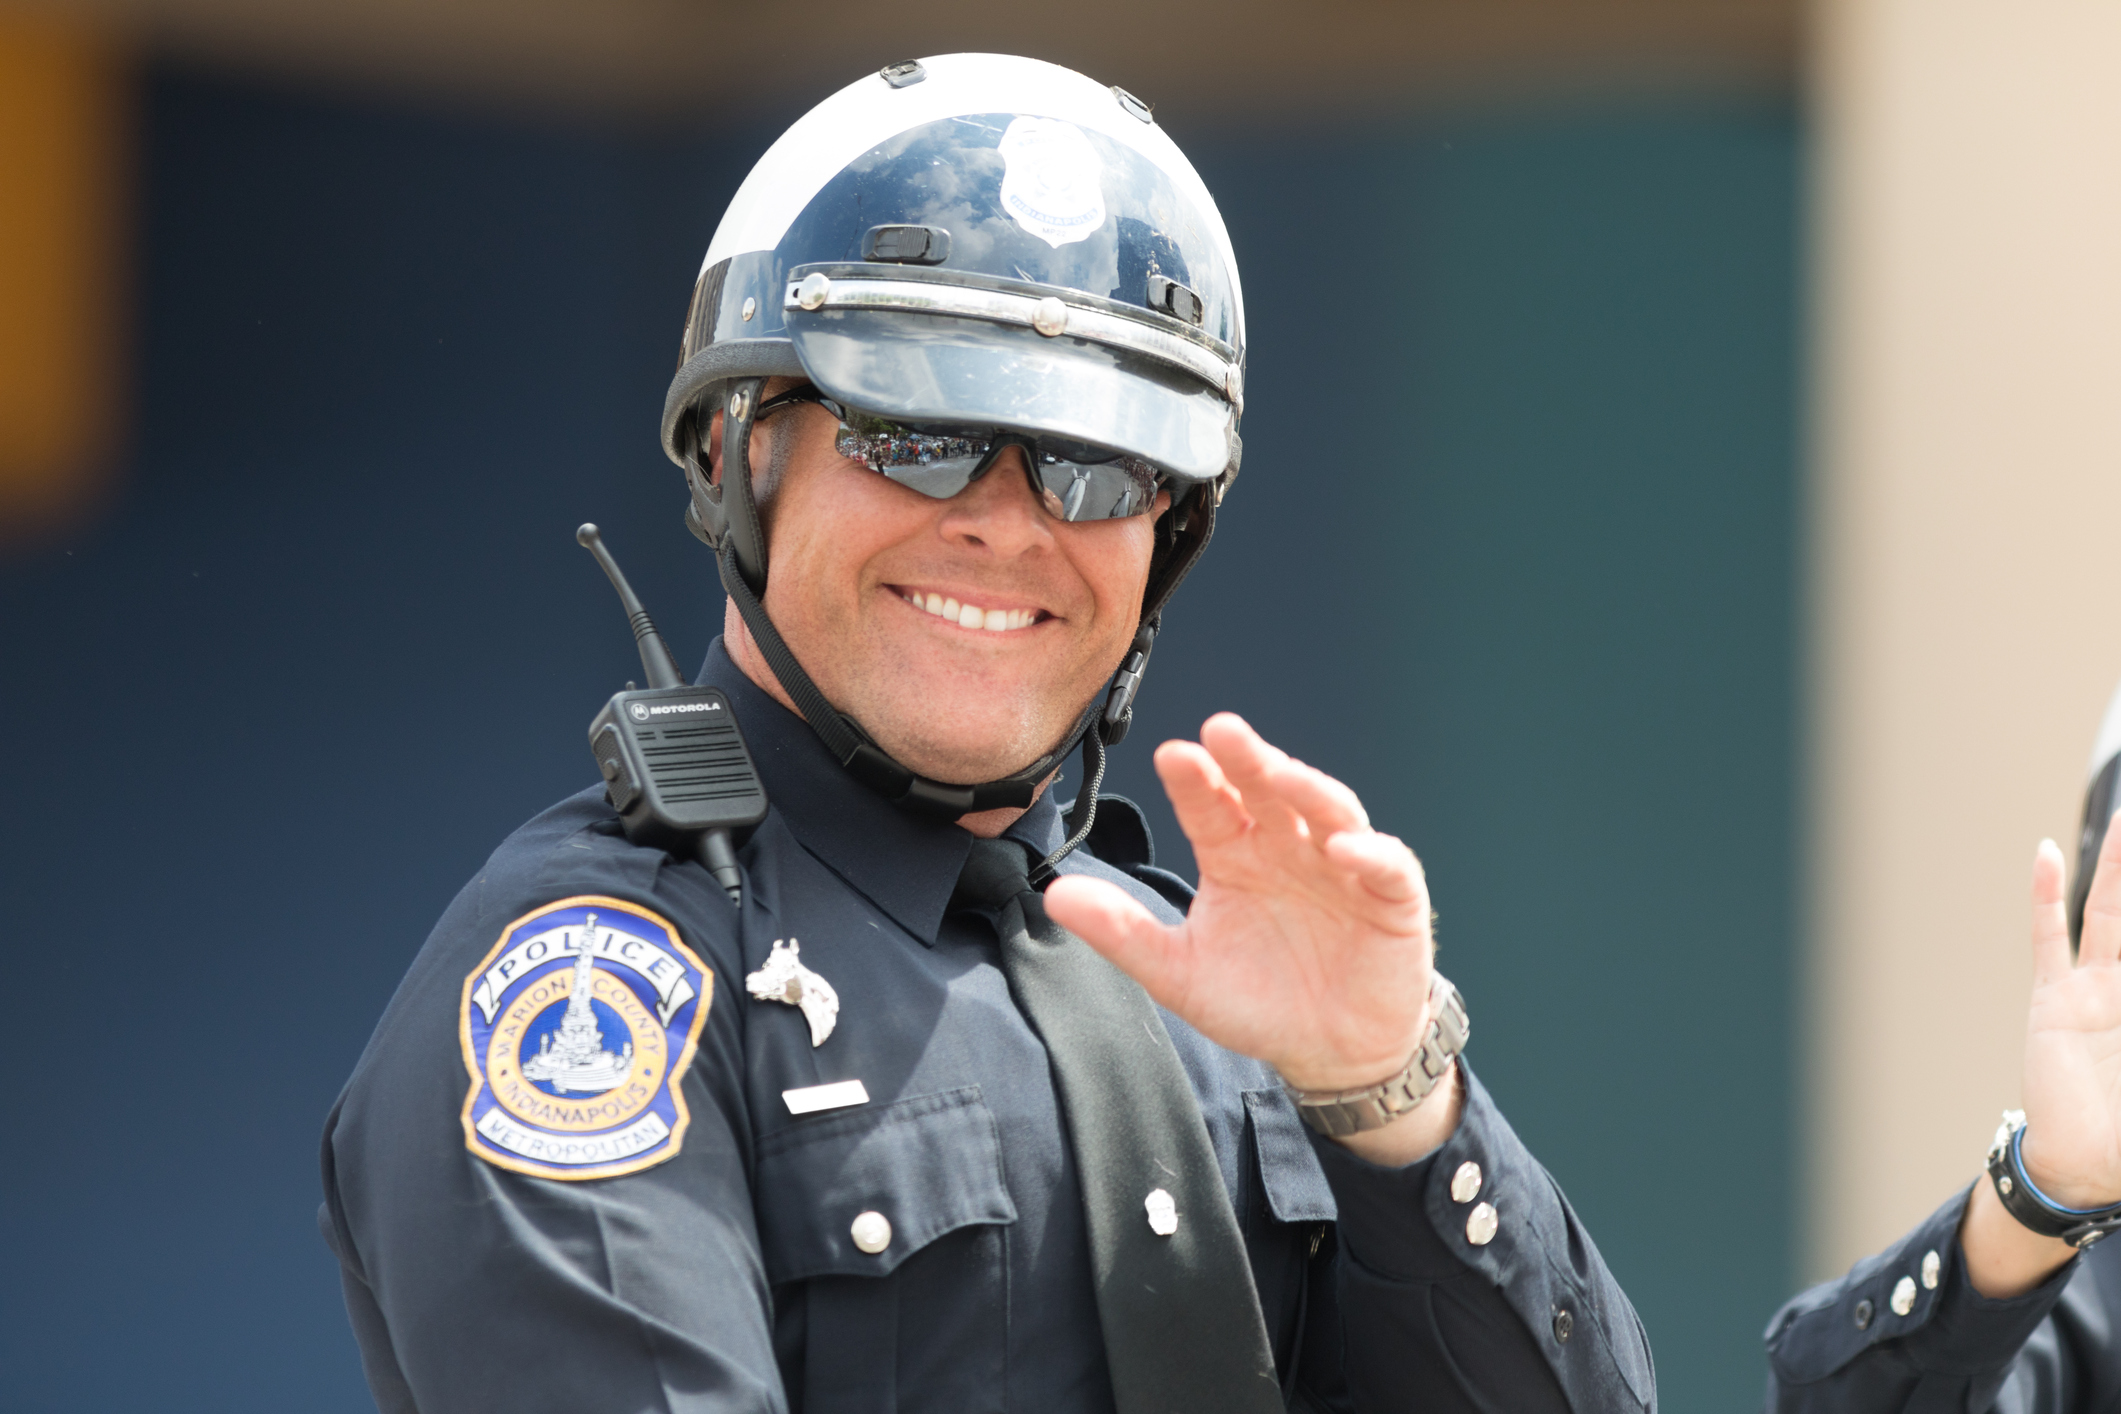 Smiling Indianapolis Police Officer